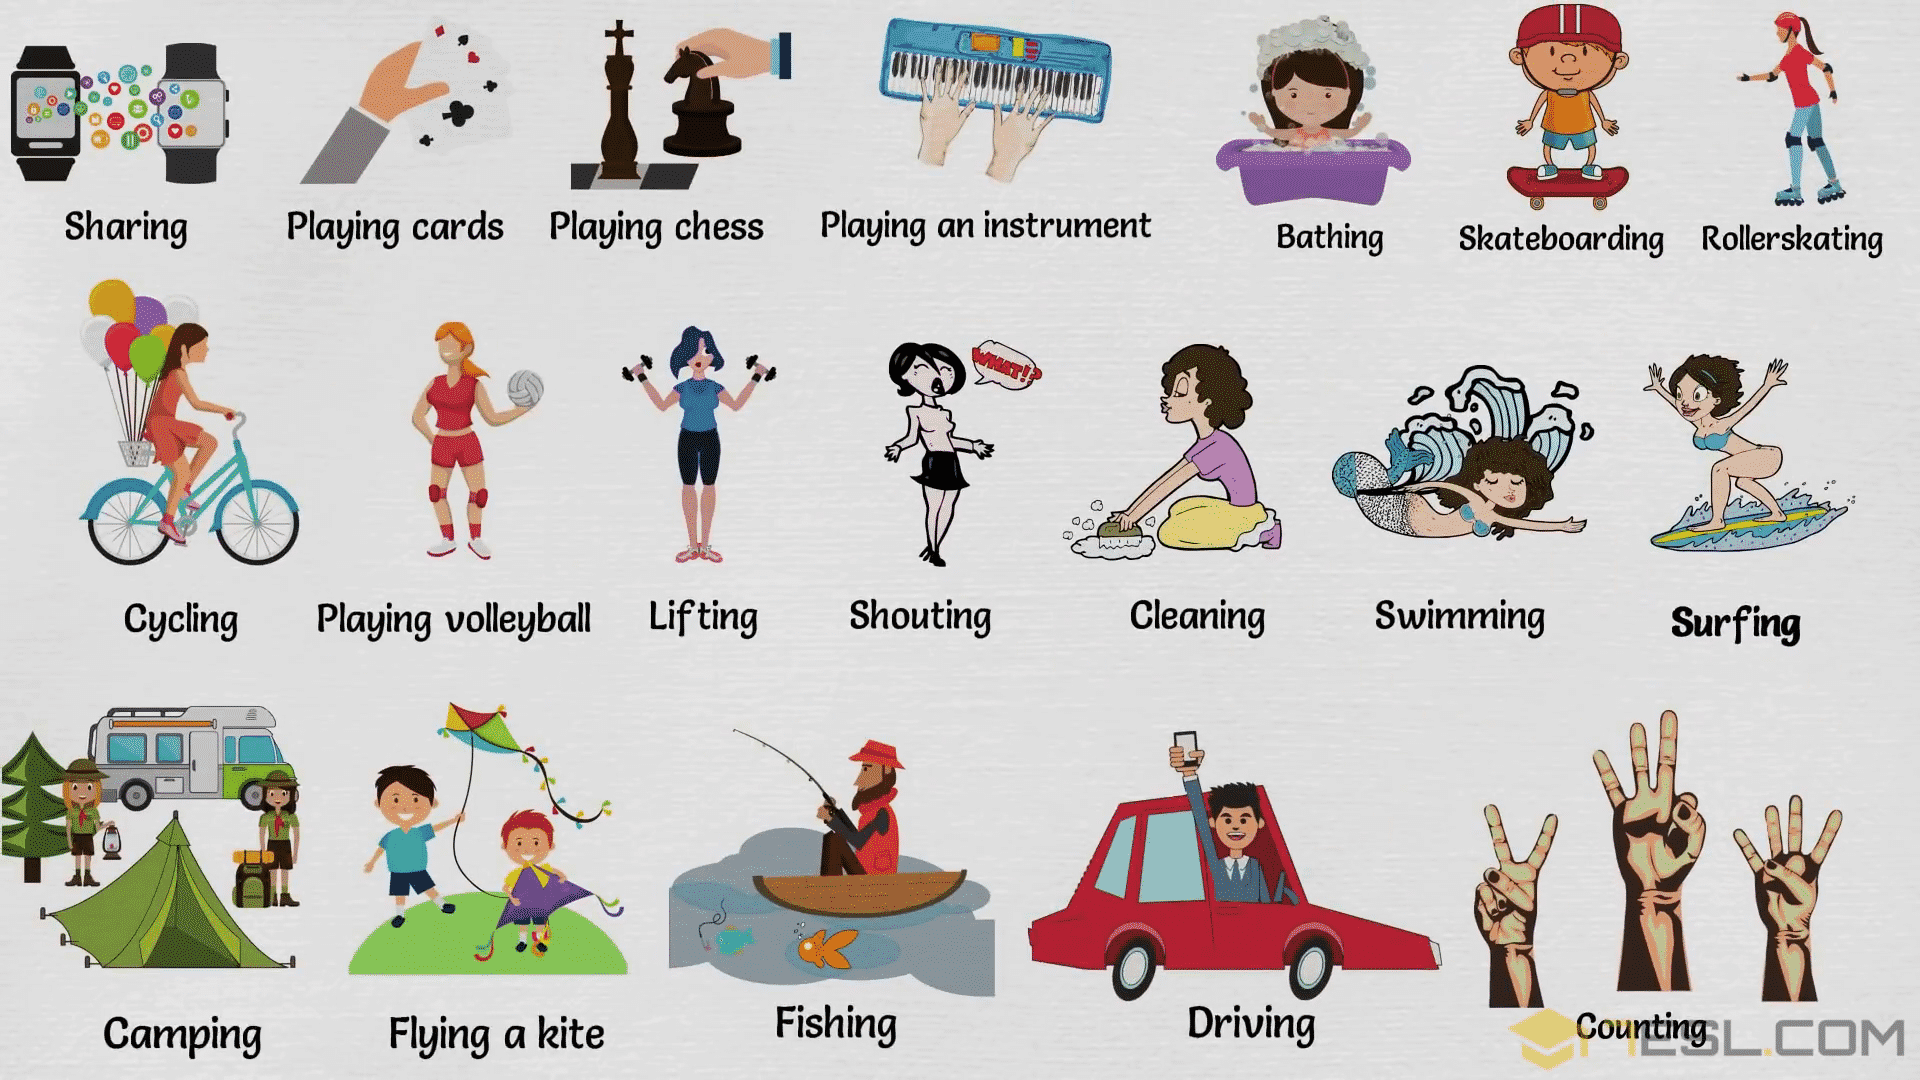 Action Words List Of Common Action Words With Pictures 7 E S L Action Words Spanish Learning Activities Action Verbs [ 1080 x 1920 Pixel ]